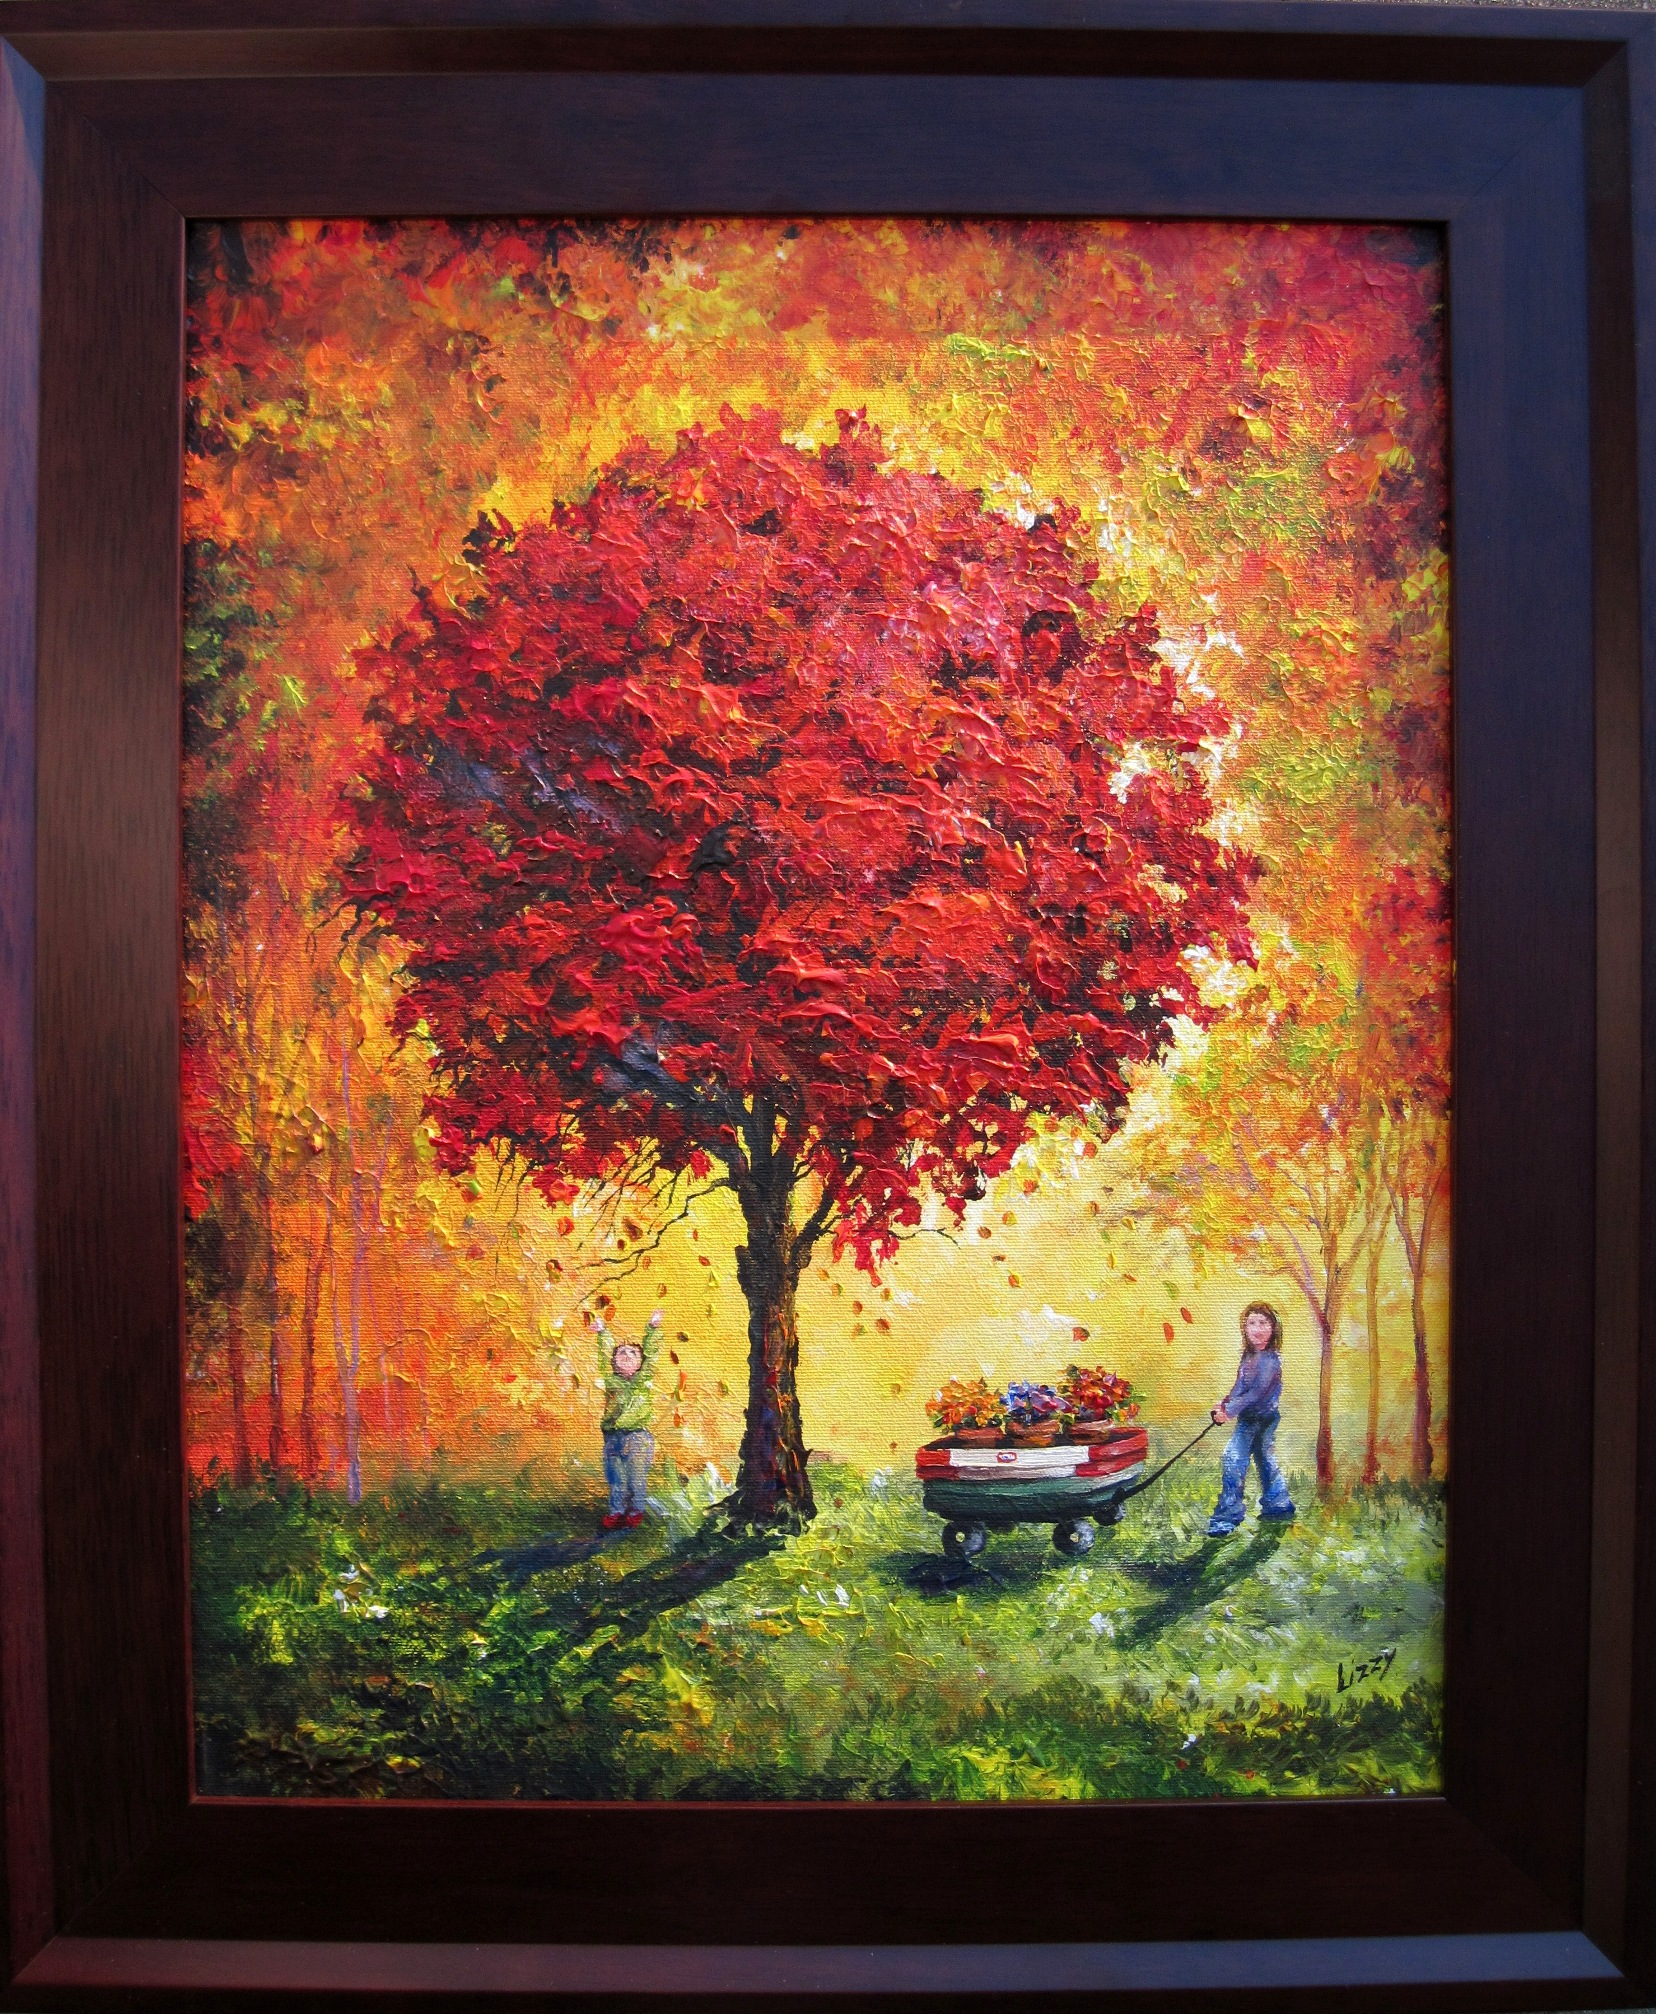 the red tree essay Below is a free excerpt of the red tree analysis from anti essays, your source for free research papers, essays, and term paper examples the red tree-vincent chen shaun tan's text, the red tree, explores the power of hope, renewal and inspiration.